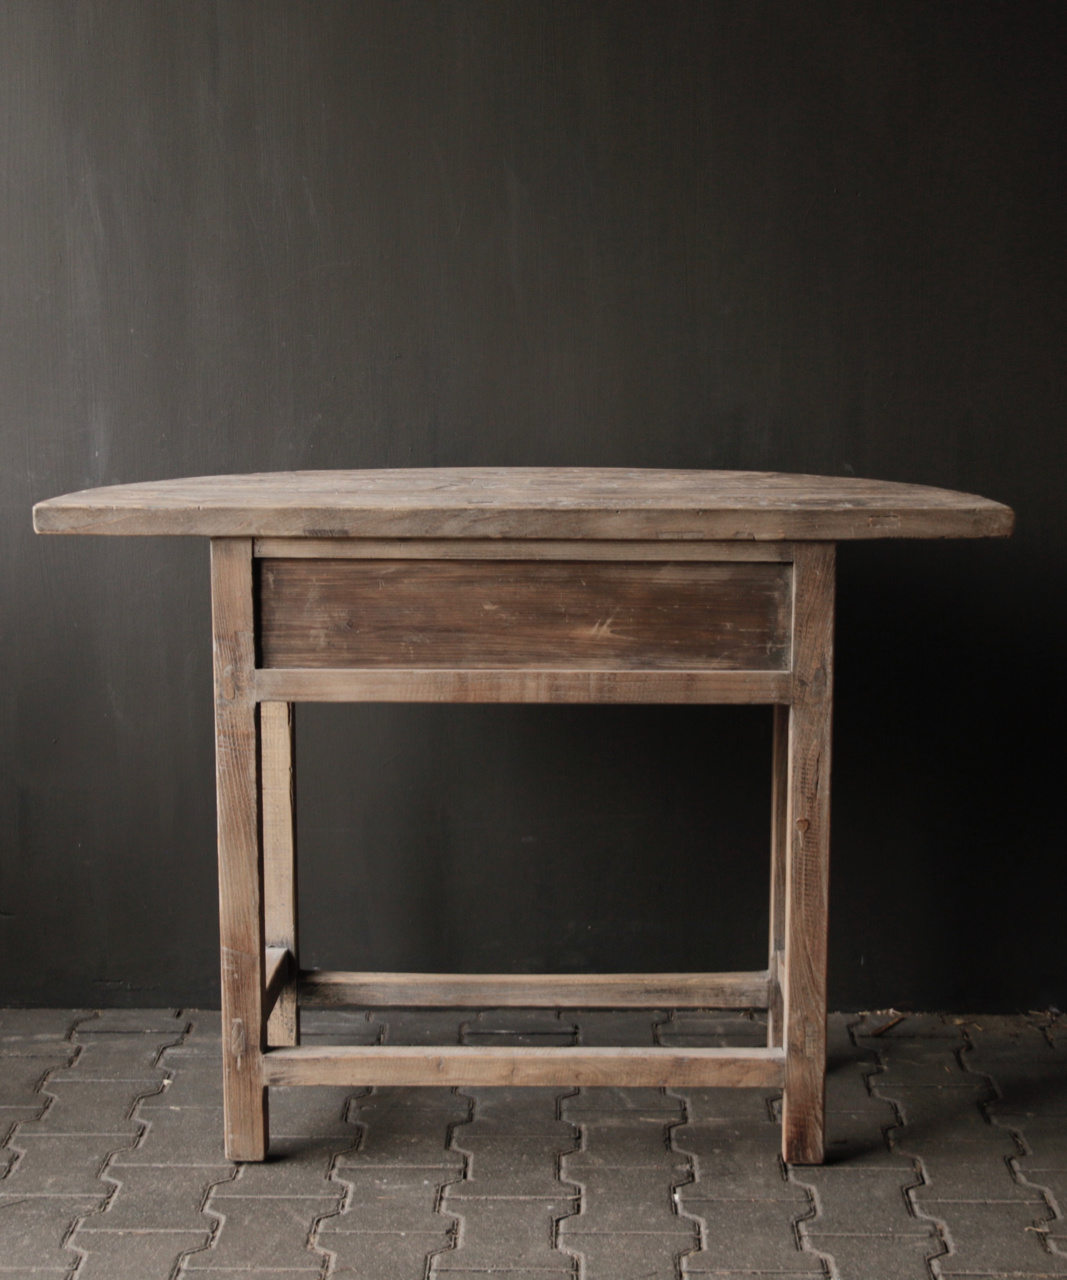 Half round wall table / Sidetable from old wood-6